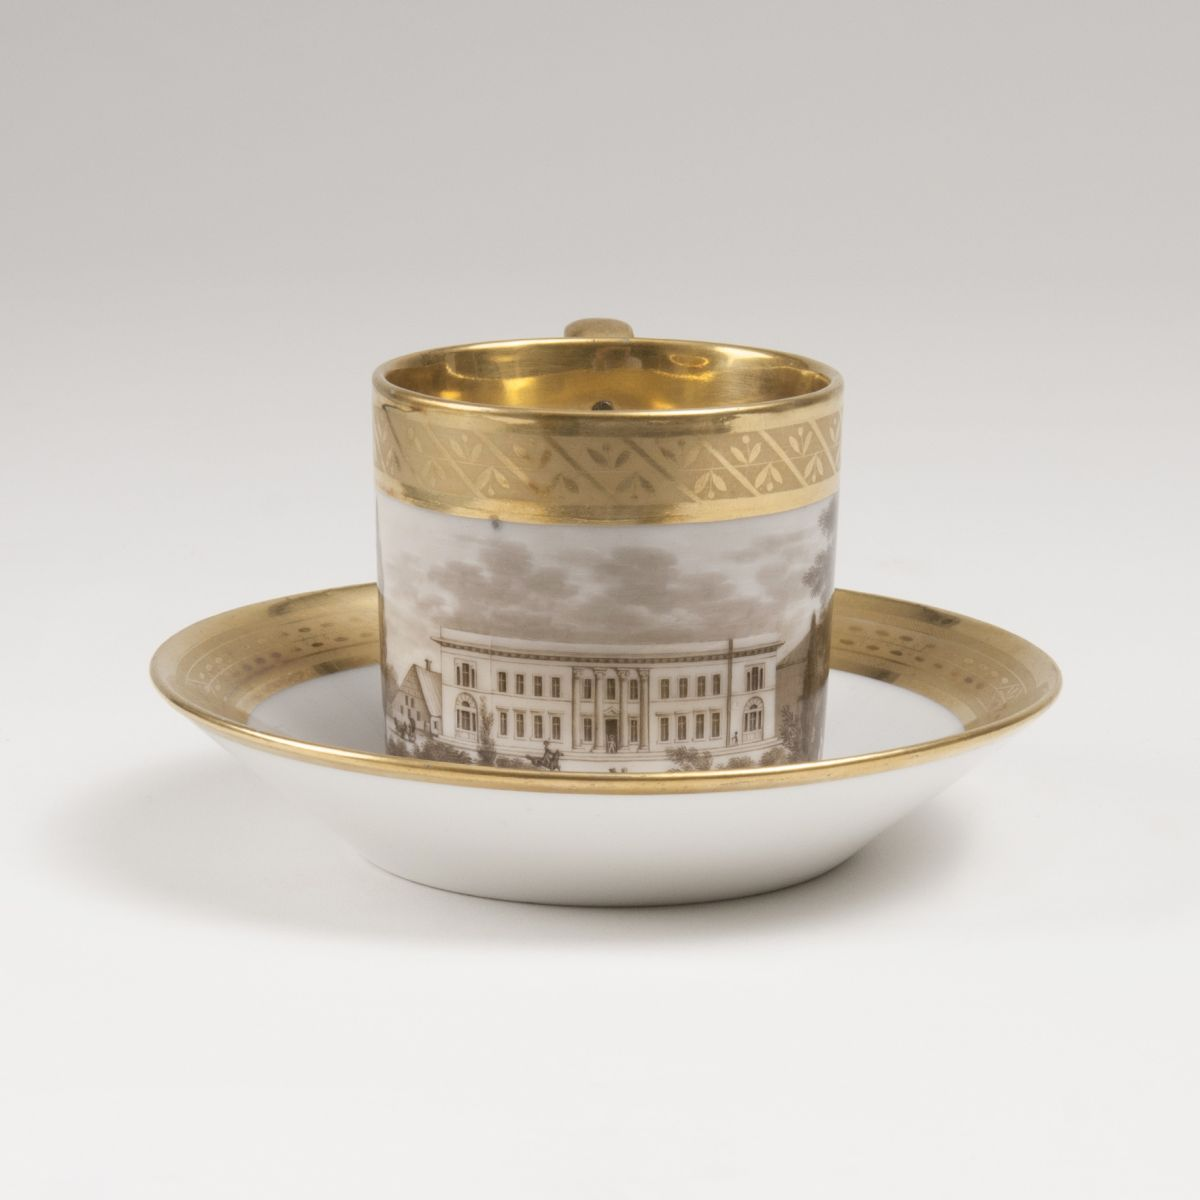 A Parisian Cup with View of a Castle in GrisailleTechnique